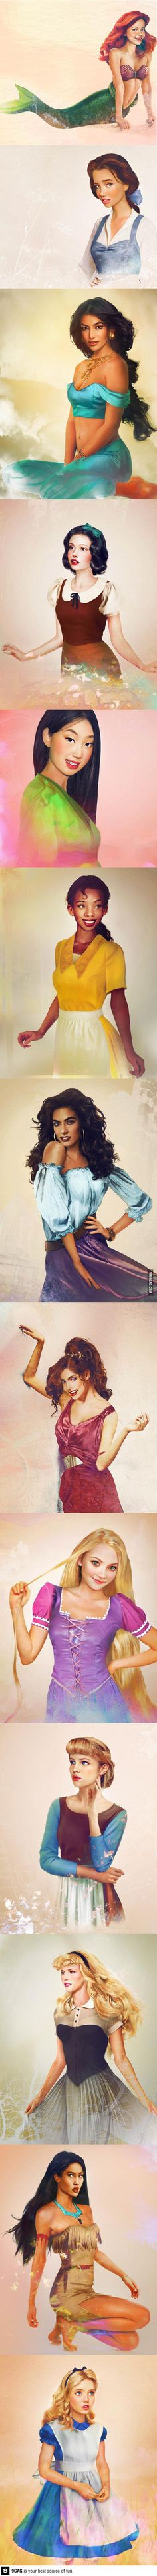 Real life Disney characters made by Jirka Väätäinen  Alyssa would LOVE this!!